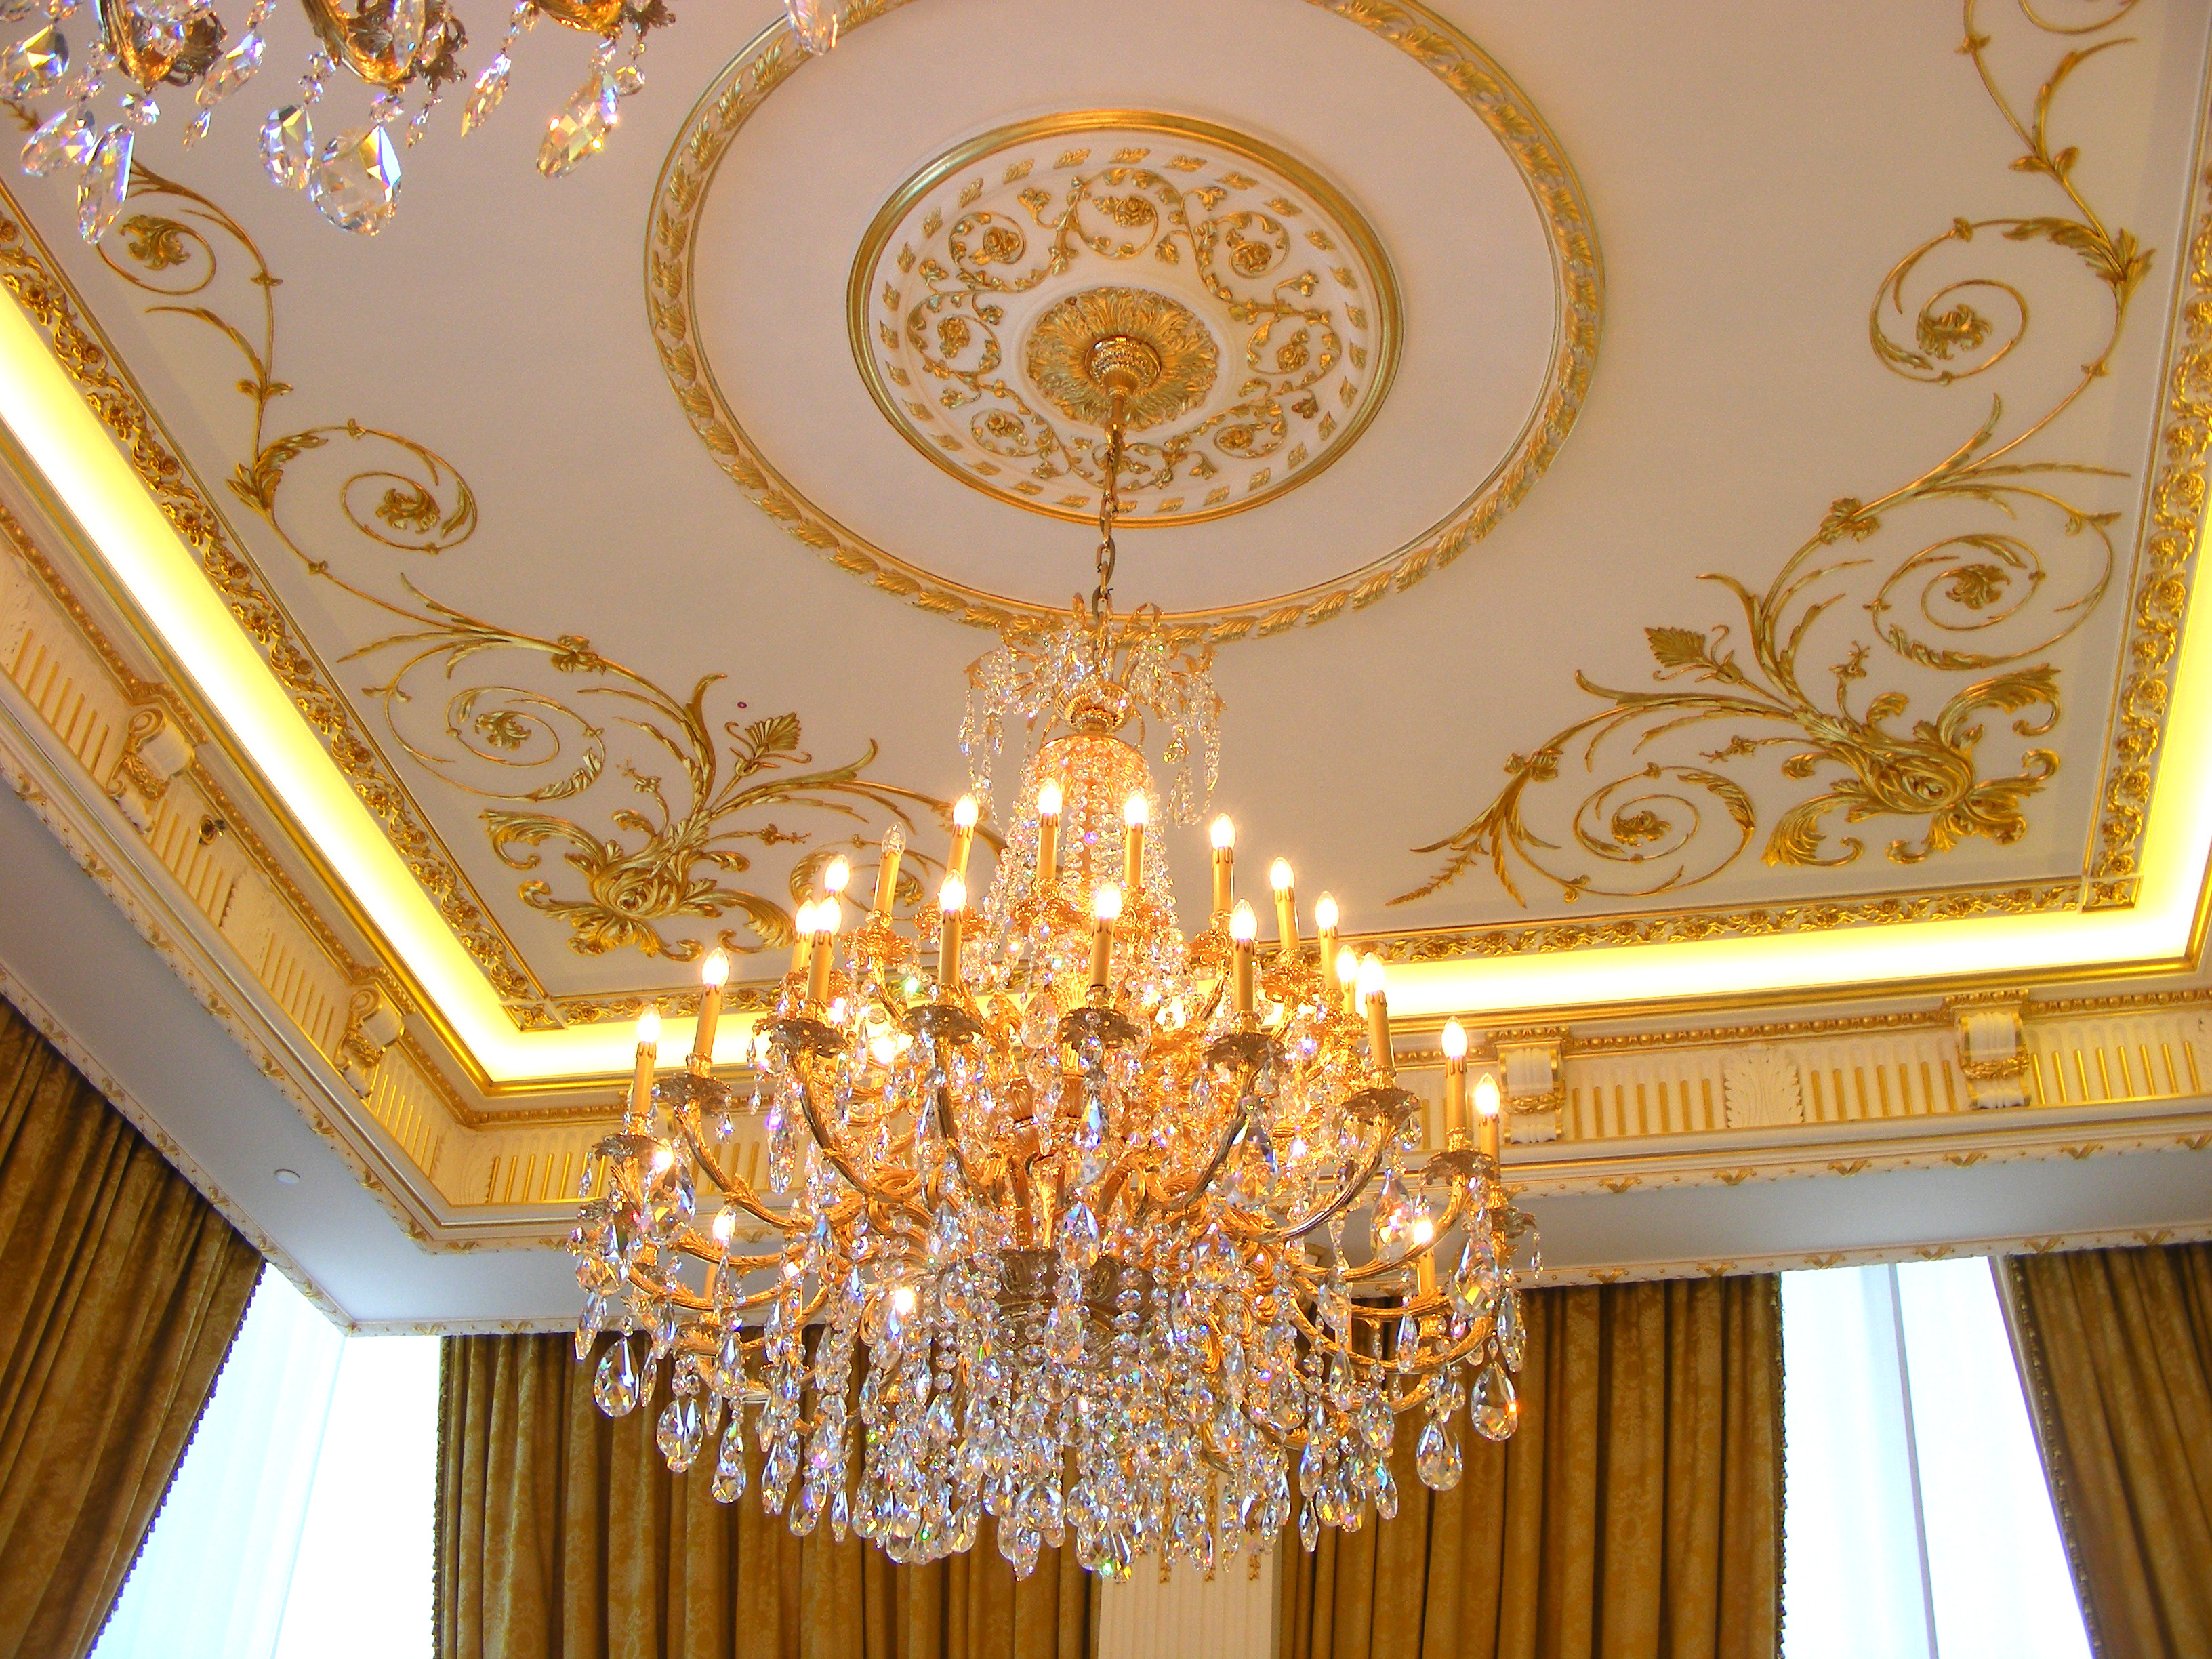 Bespoke decorative plaster ceilings stevensons of norwich for Decorative ceilings